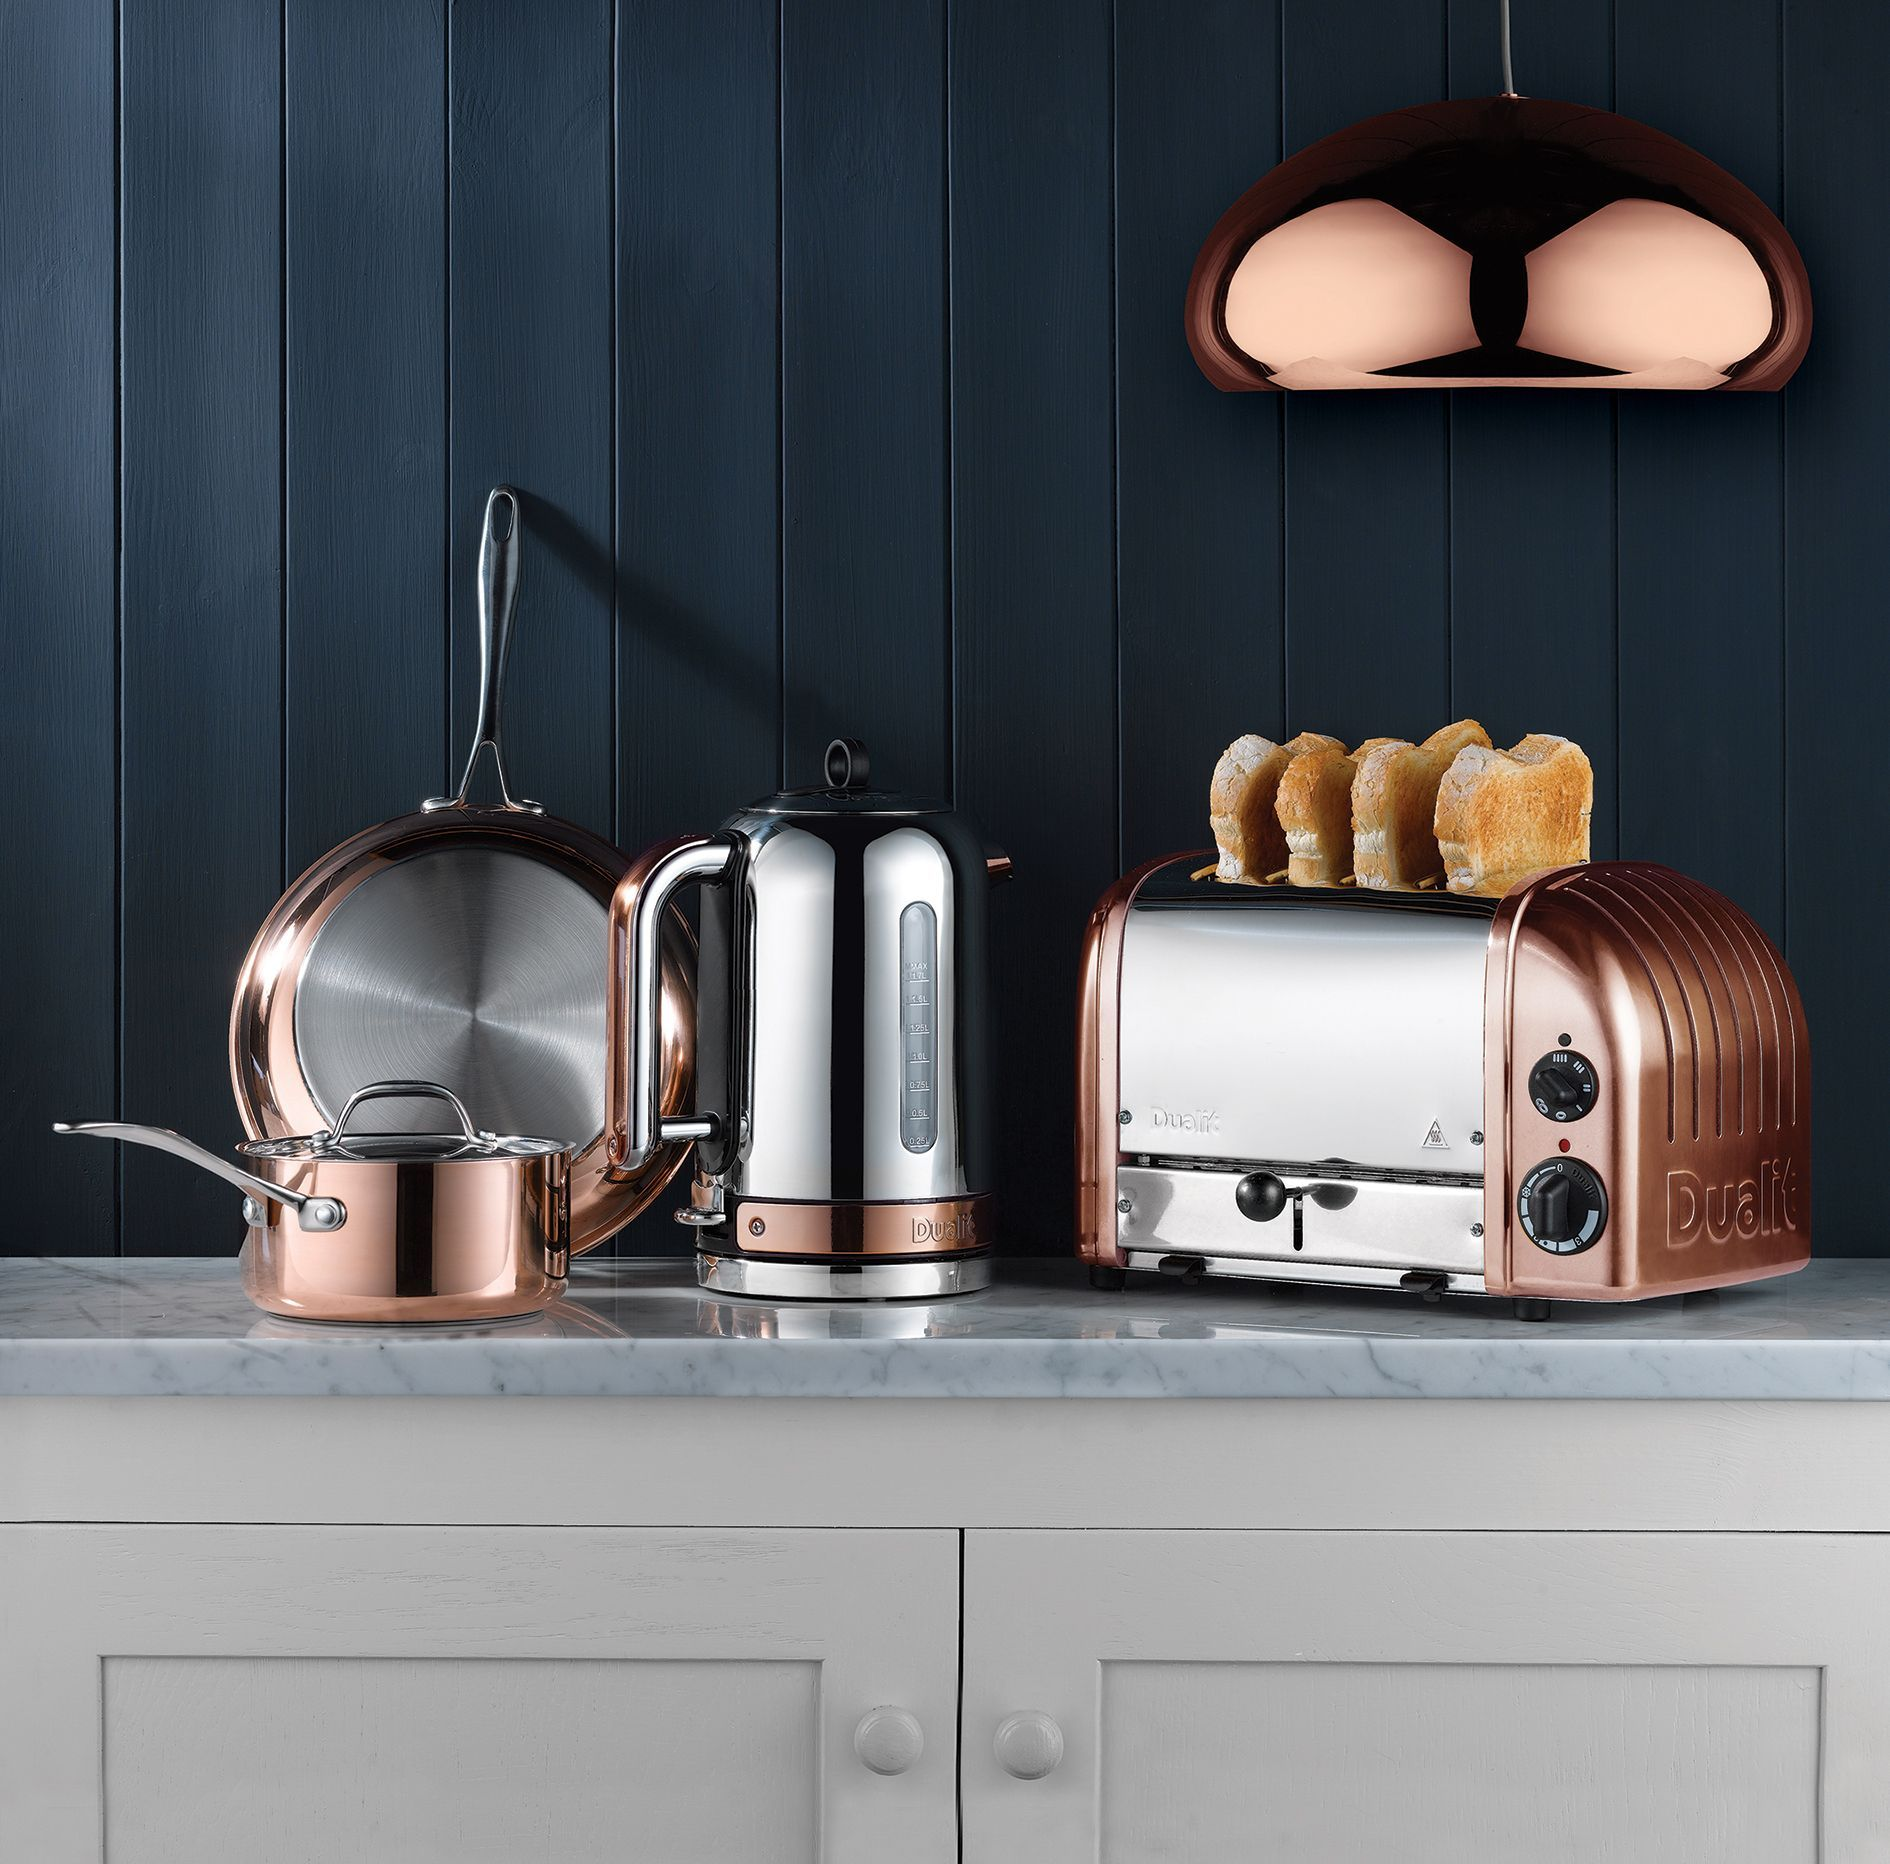 12 Metallic Kitchen Ideas Ideas Kitchen Metallic In 2020 Rose Gold Kitchen Gold Kitchen Copper Kitchen Accessories